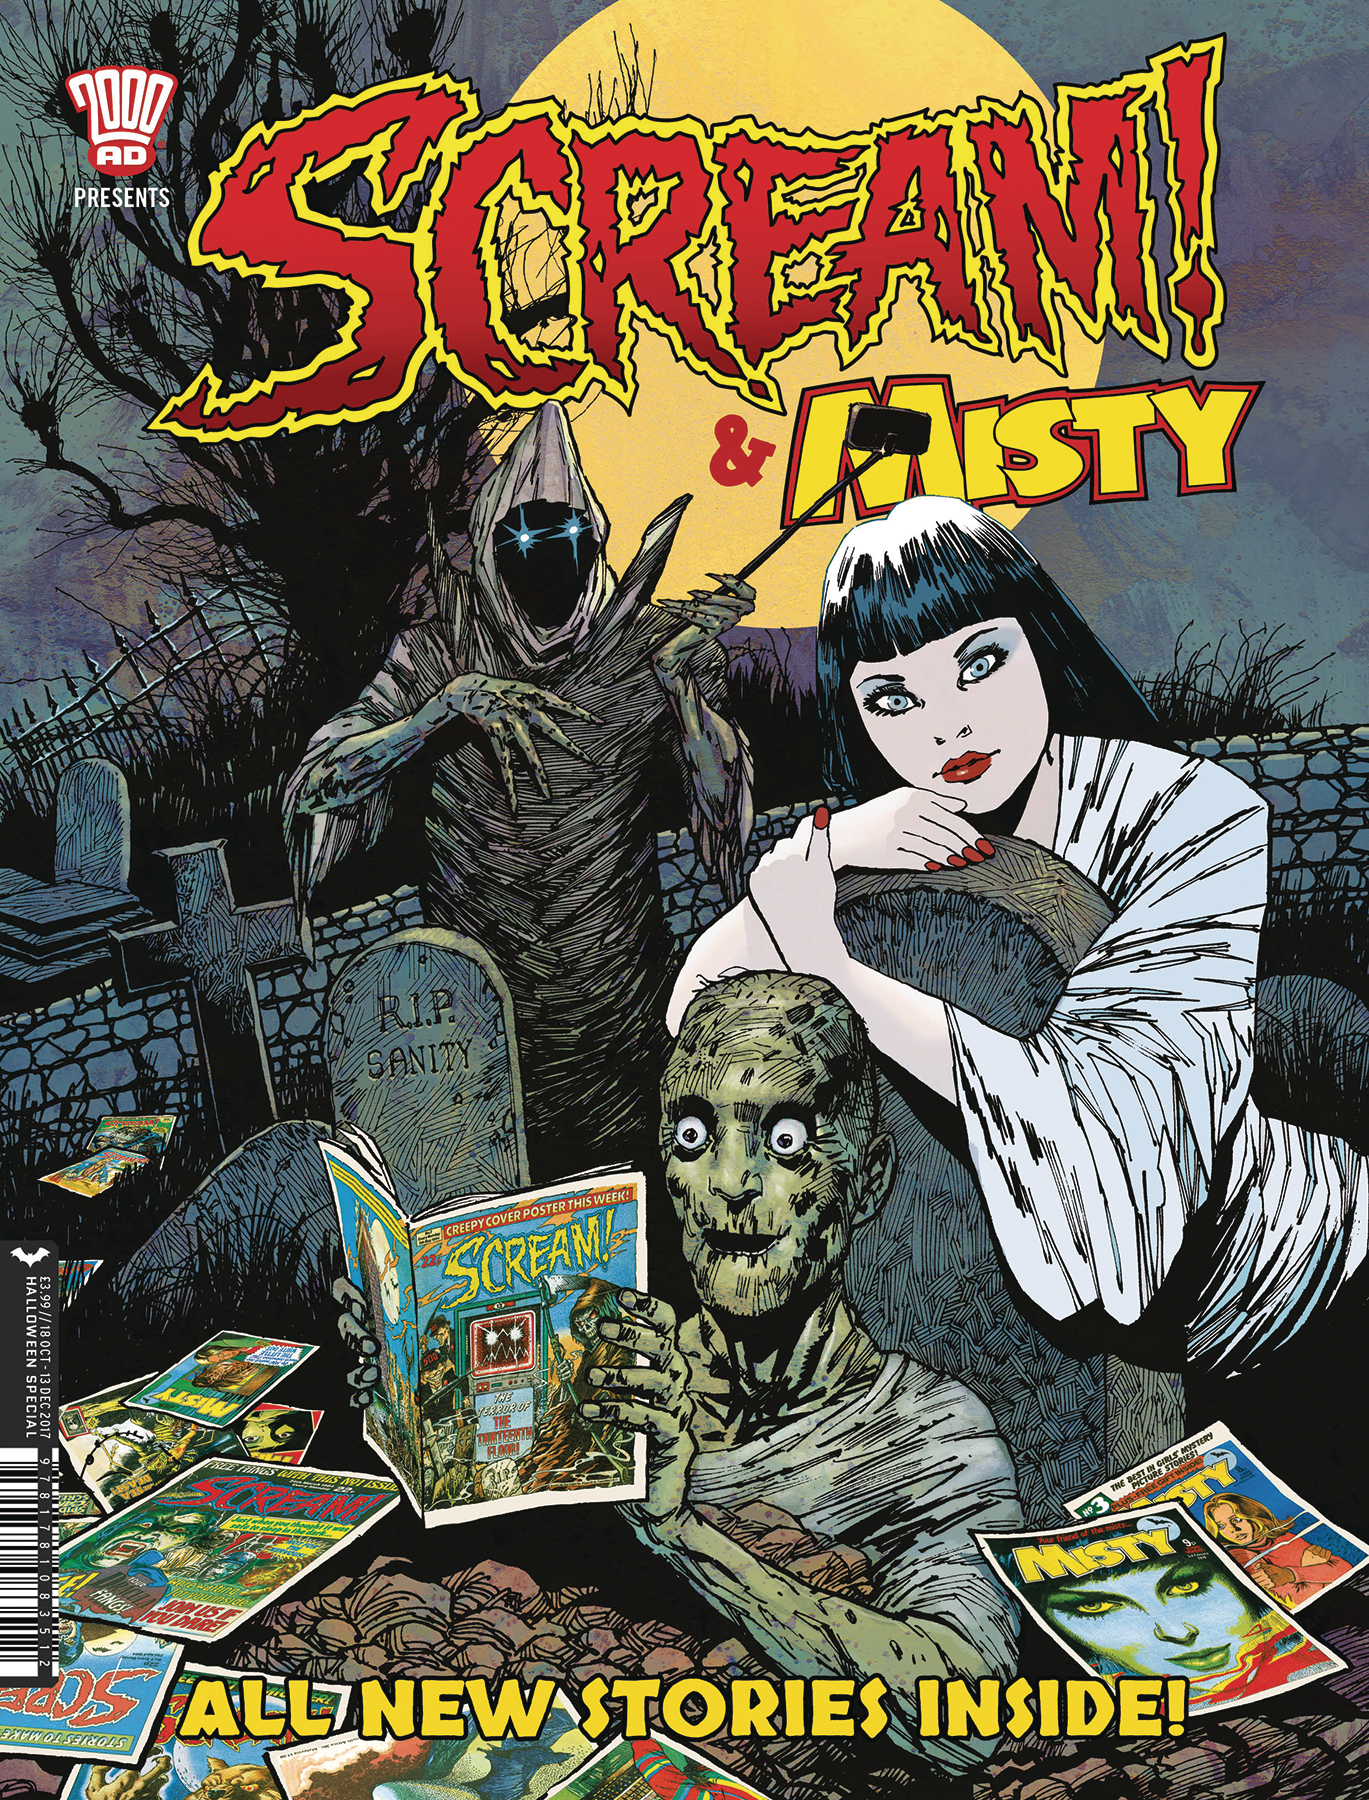 SCREAM MISTY SPECIAL #1